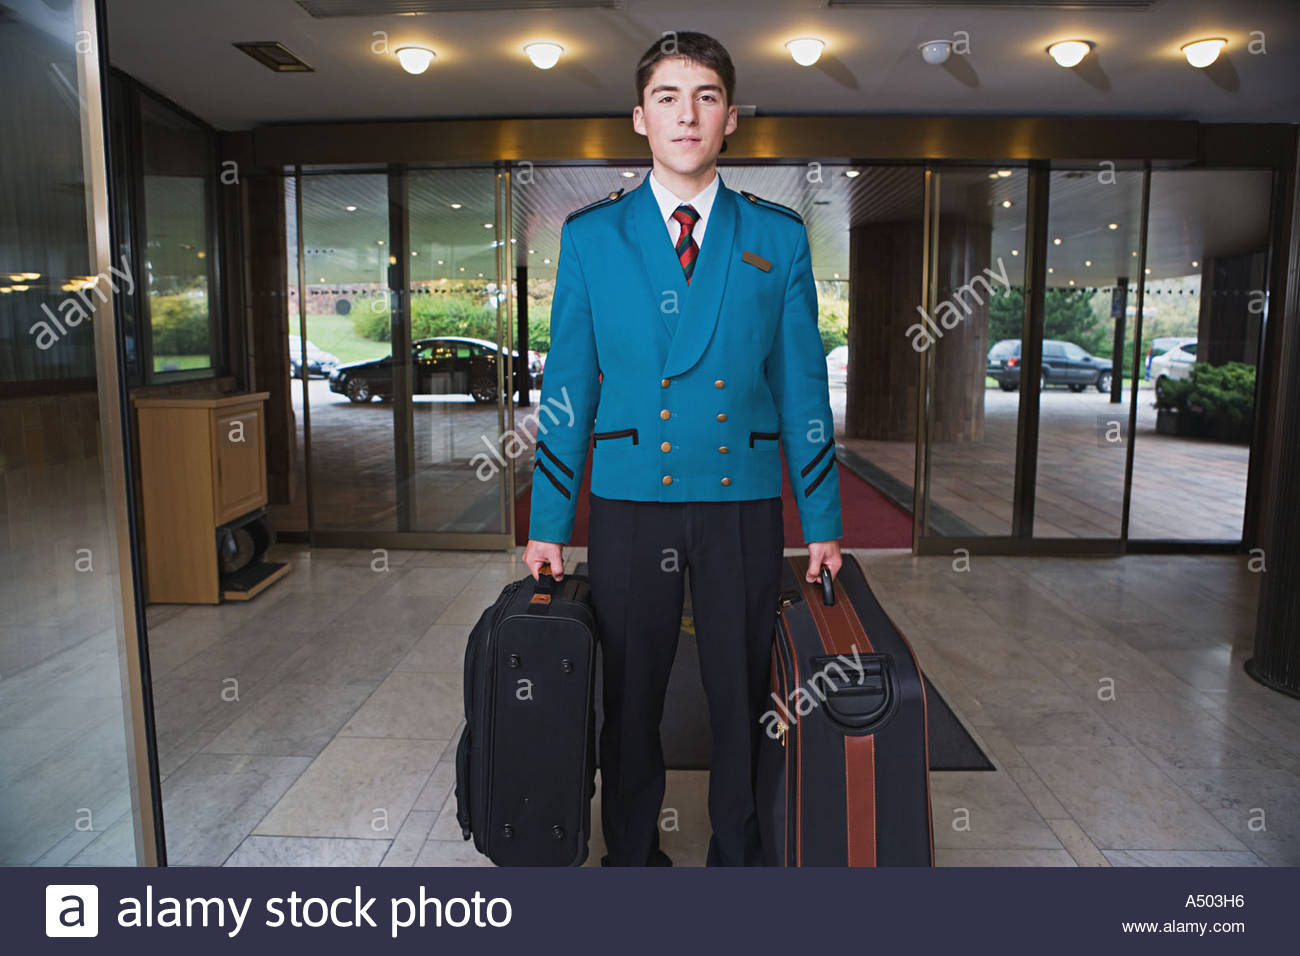 Bellboy carrying suitcases - Stock Image